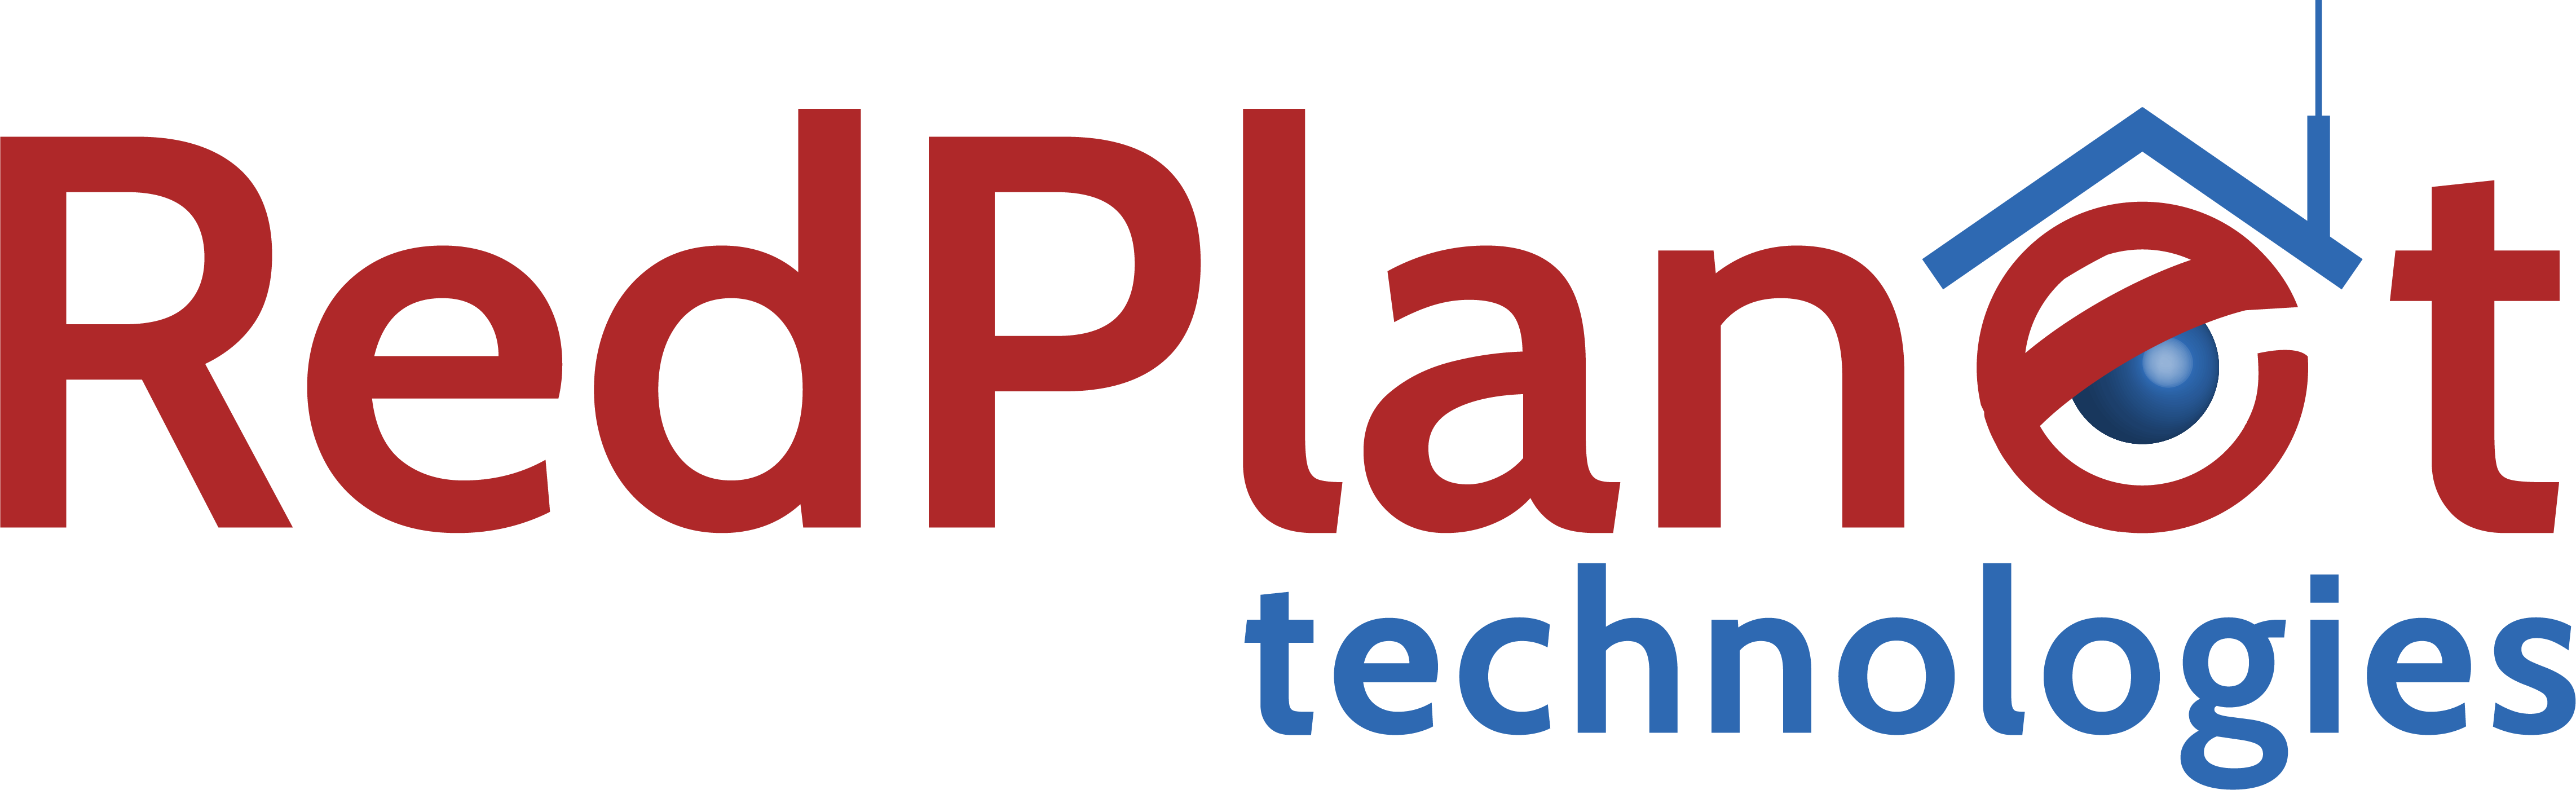 RedPlanet Technologies